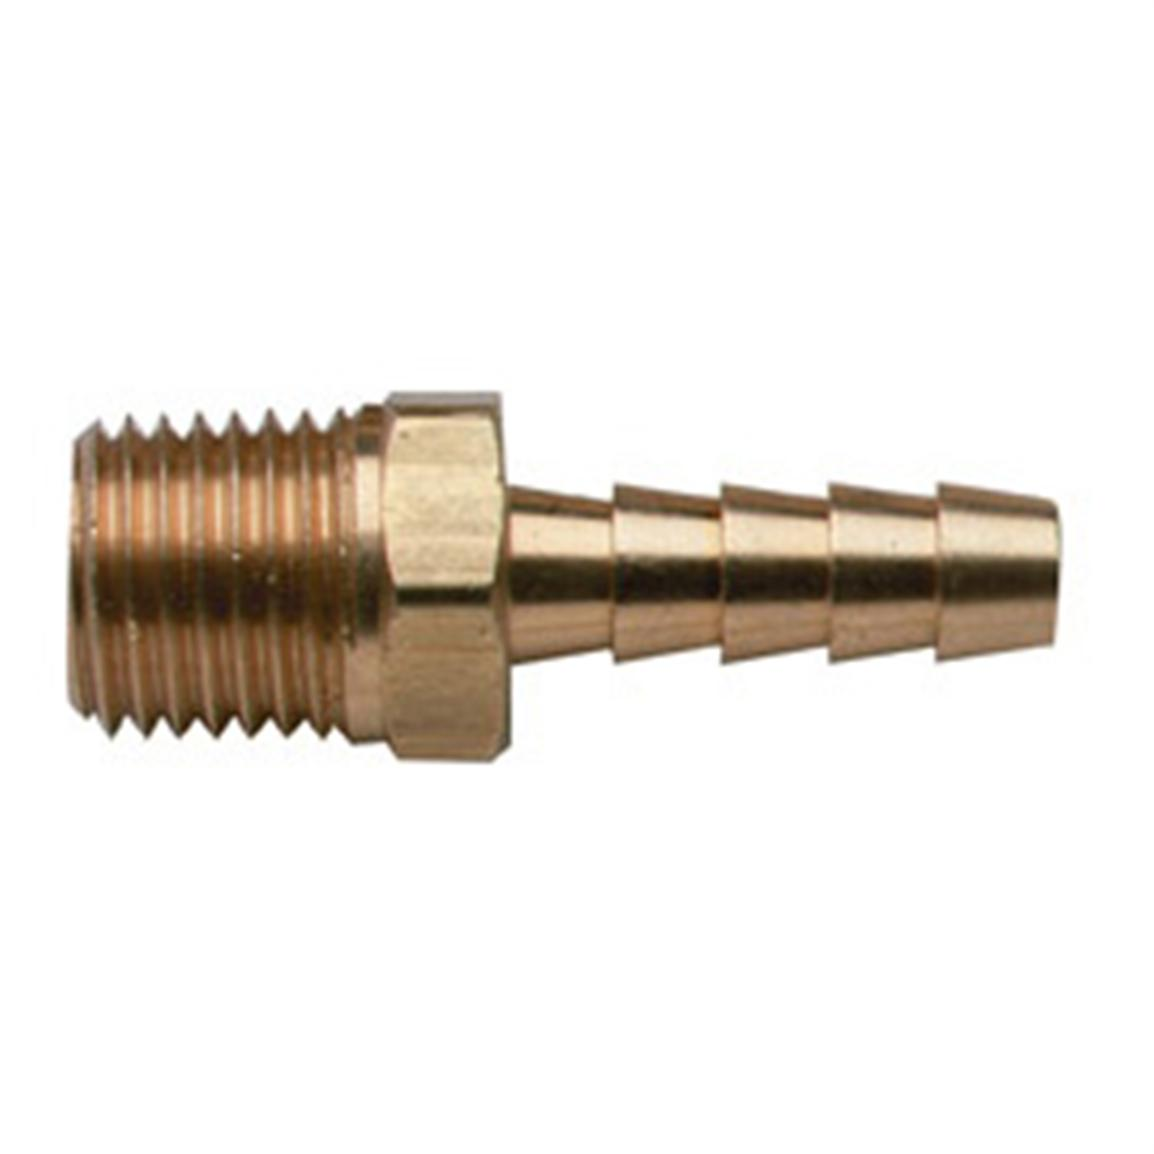 "Moeller® 1/4"" NPT x 5/16"" Hose Barbs with Male Threads"